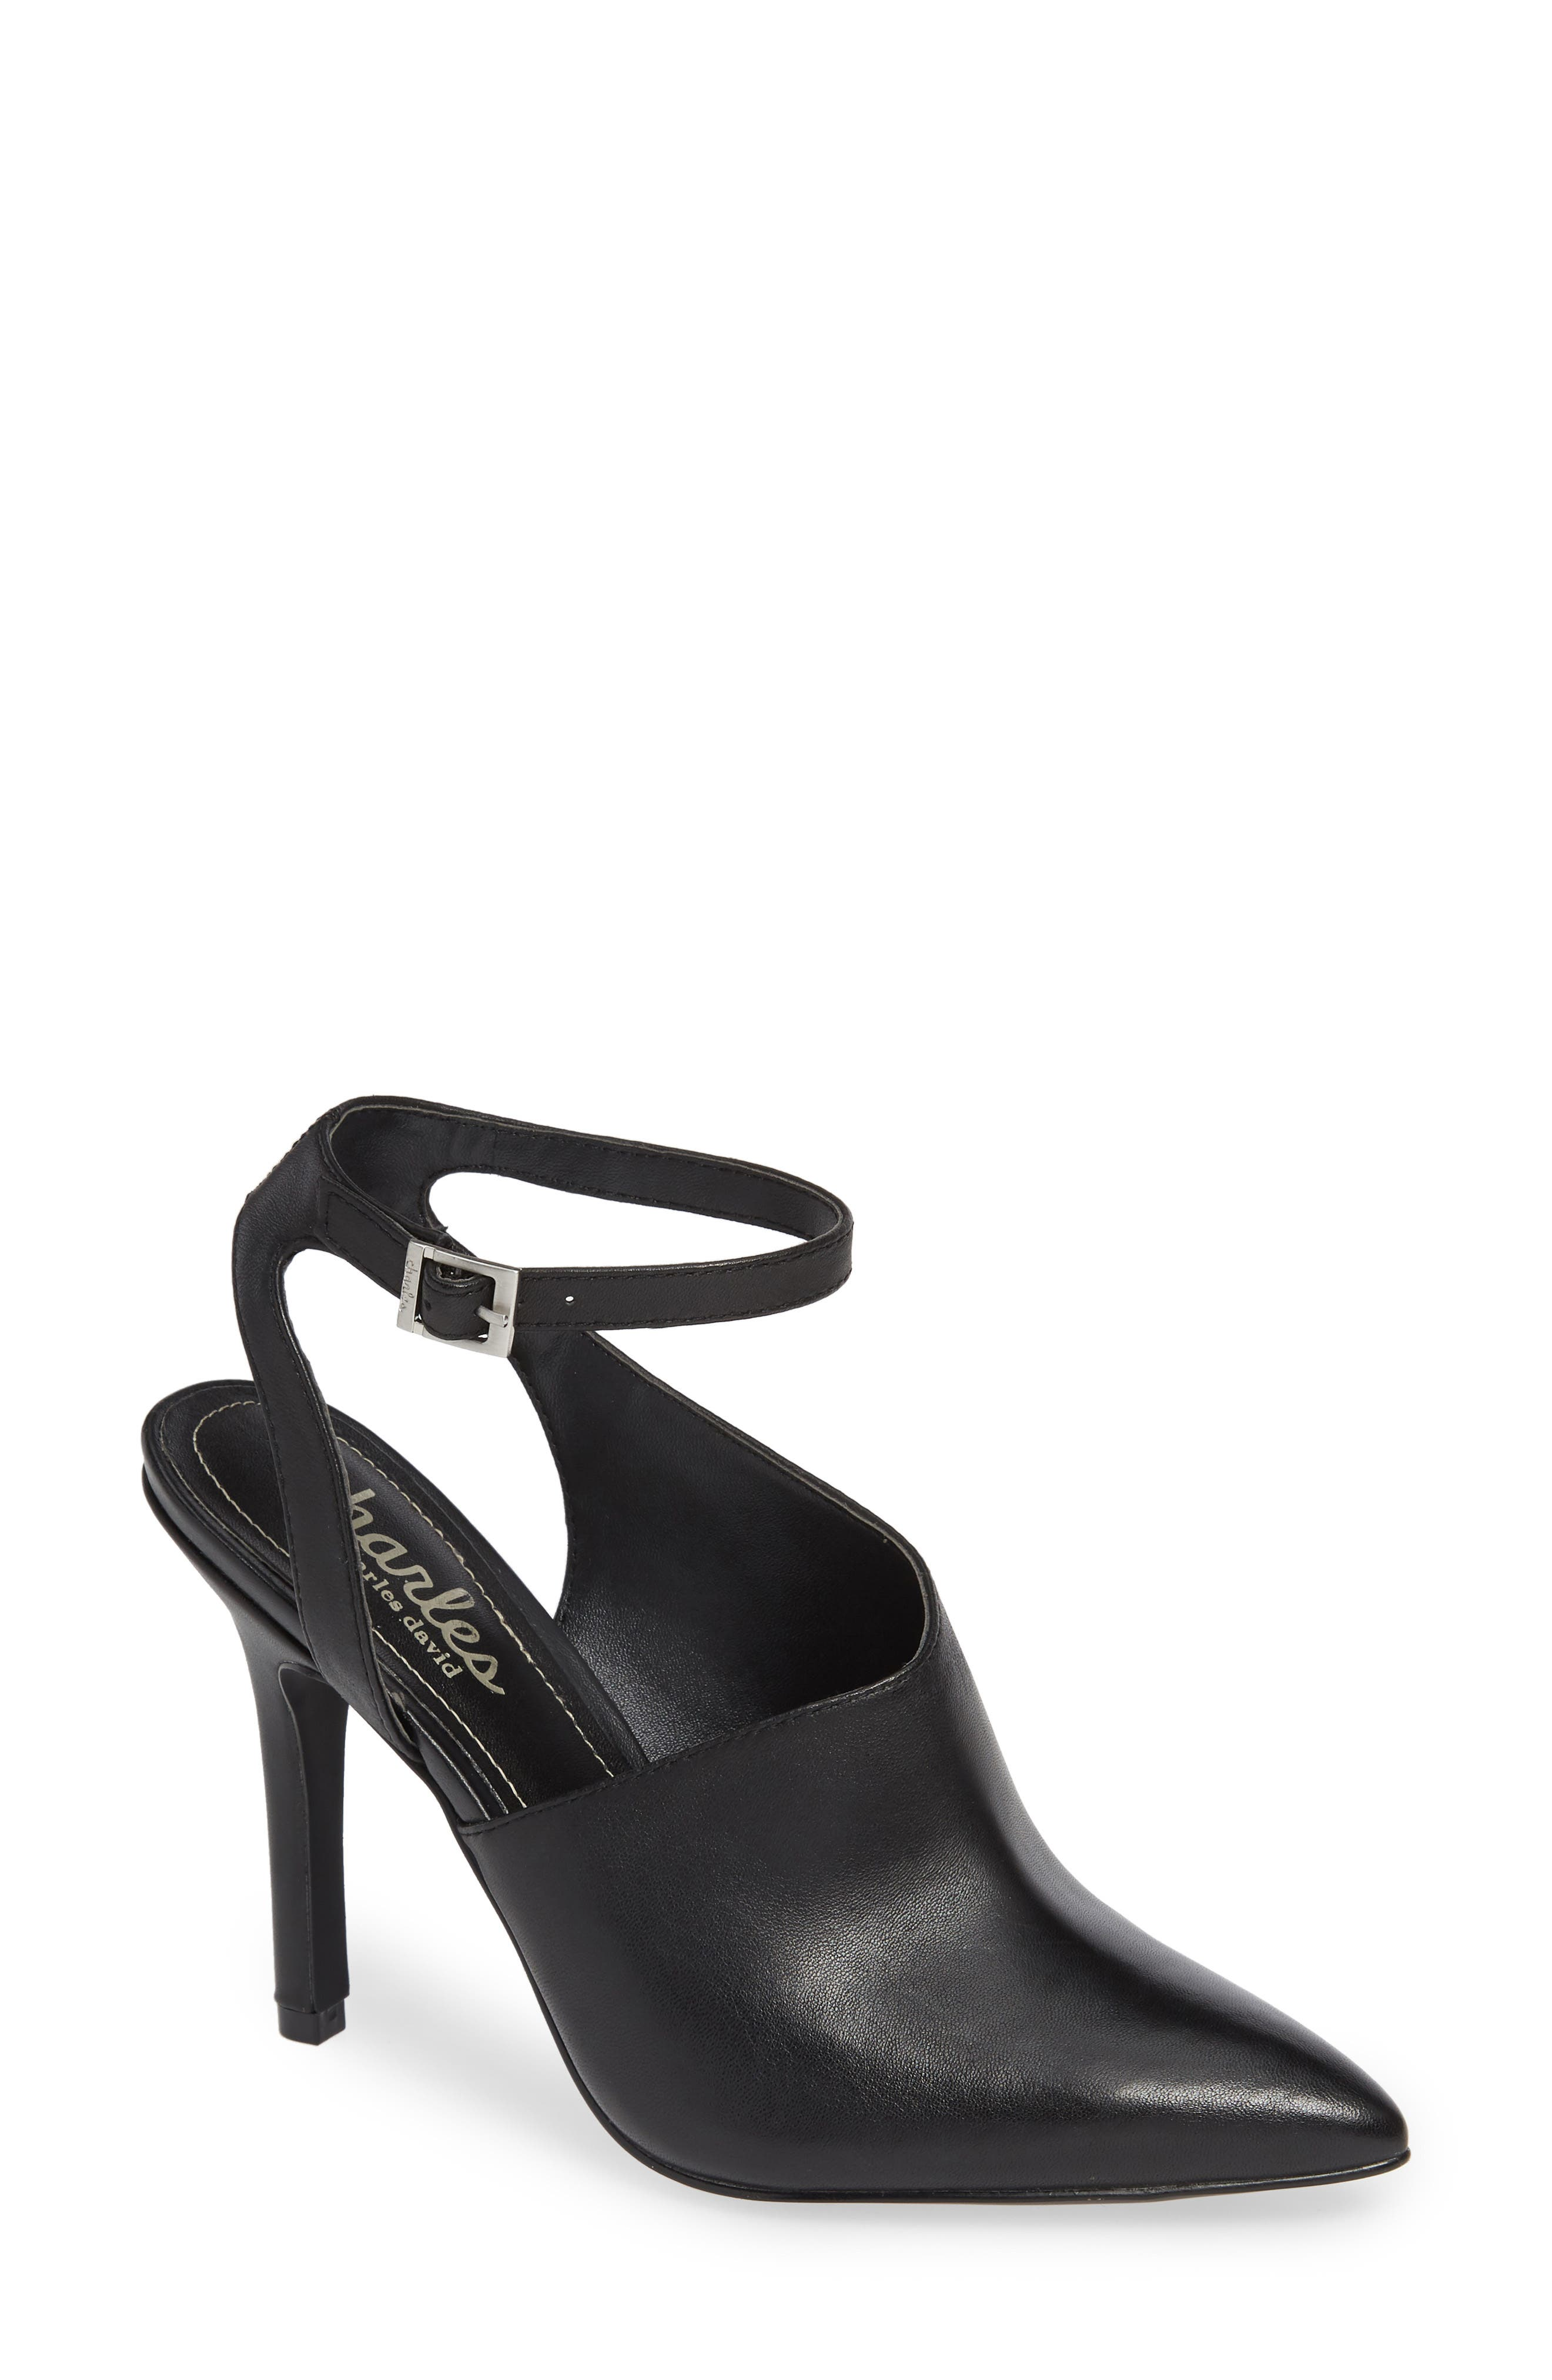 CHARLES BY CHARLES DAVID Mieko Ankle-Wrap Leather Pumps in Black